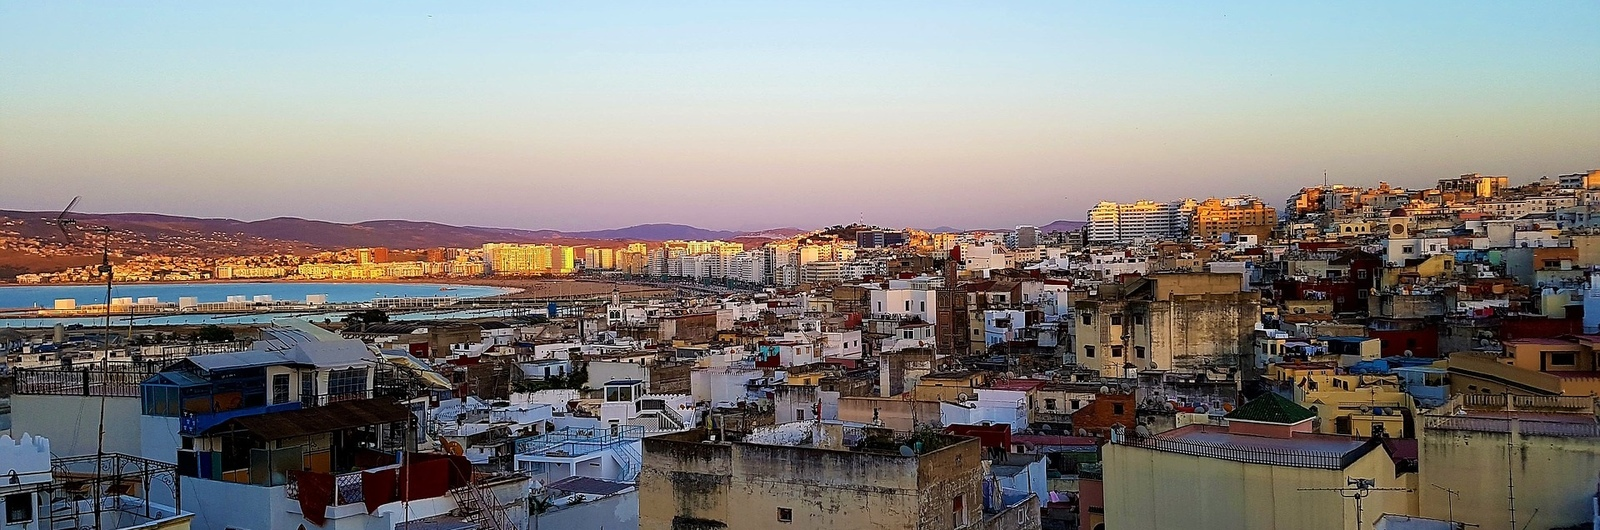 tangier city header